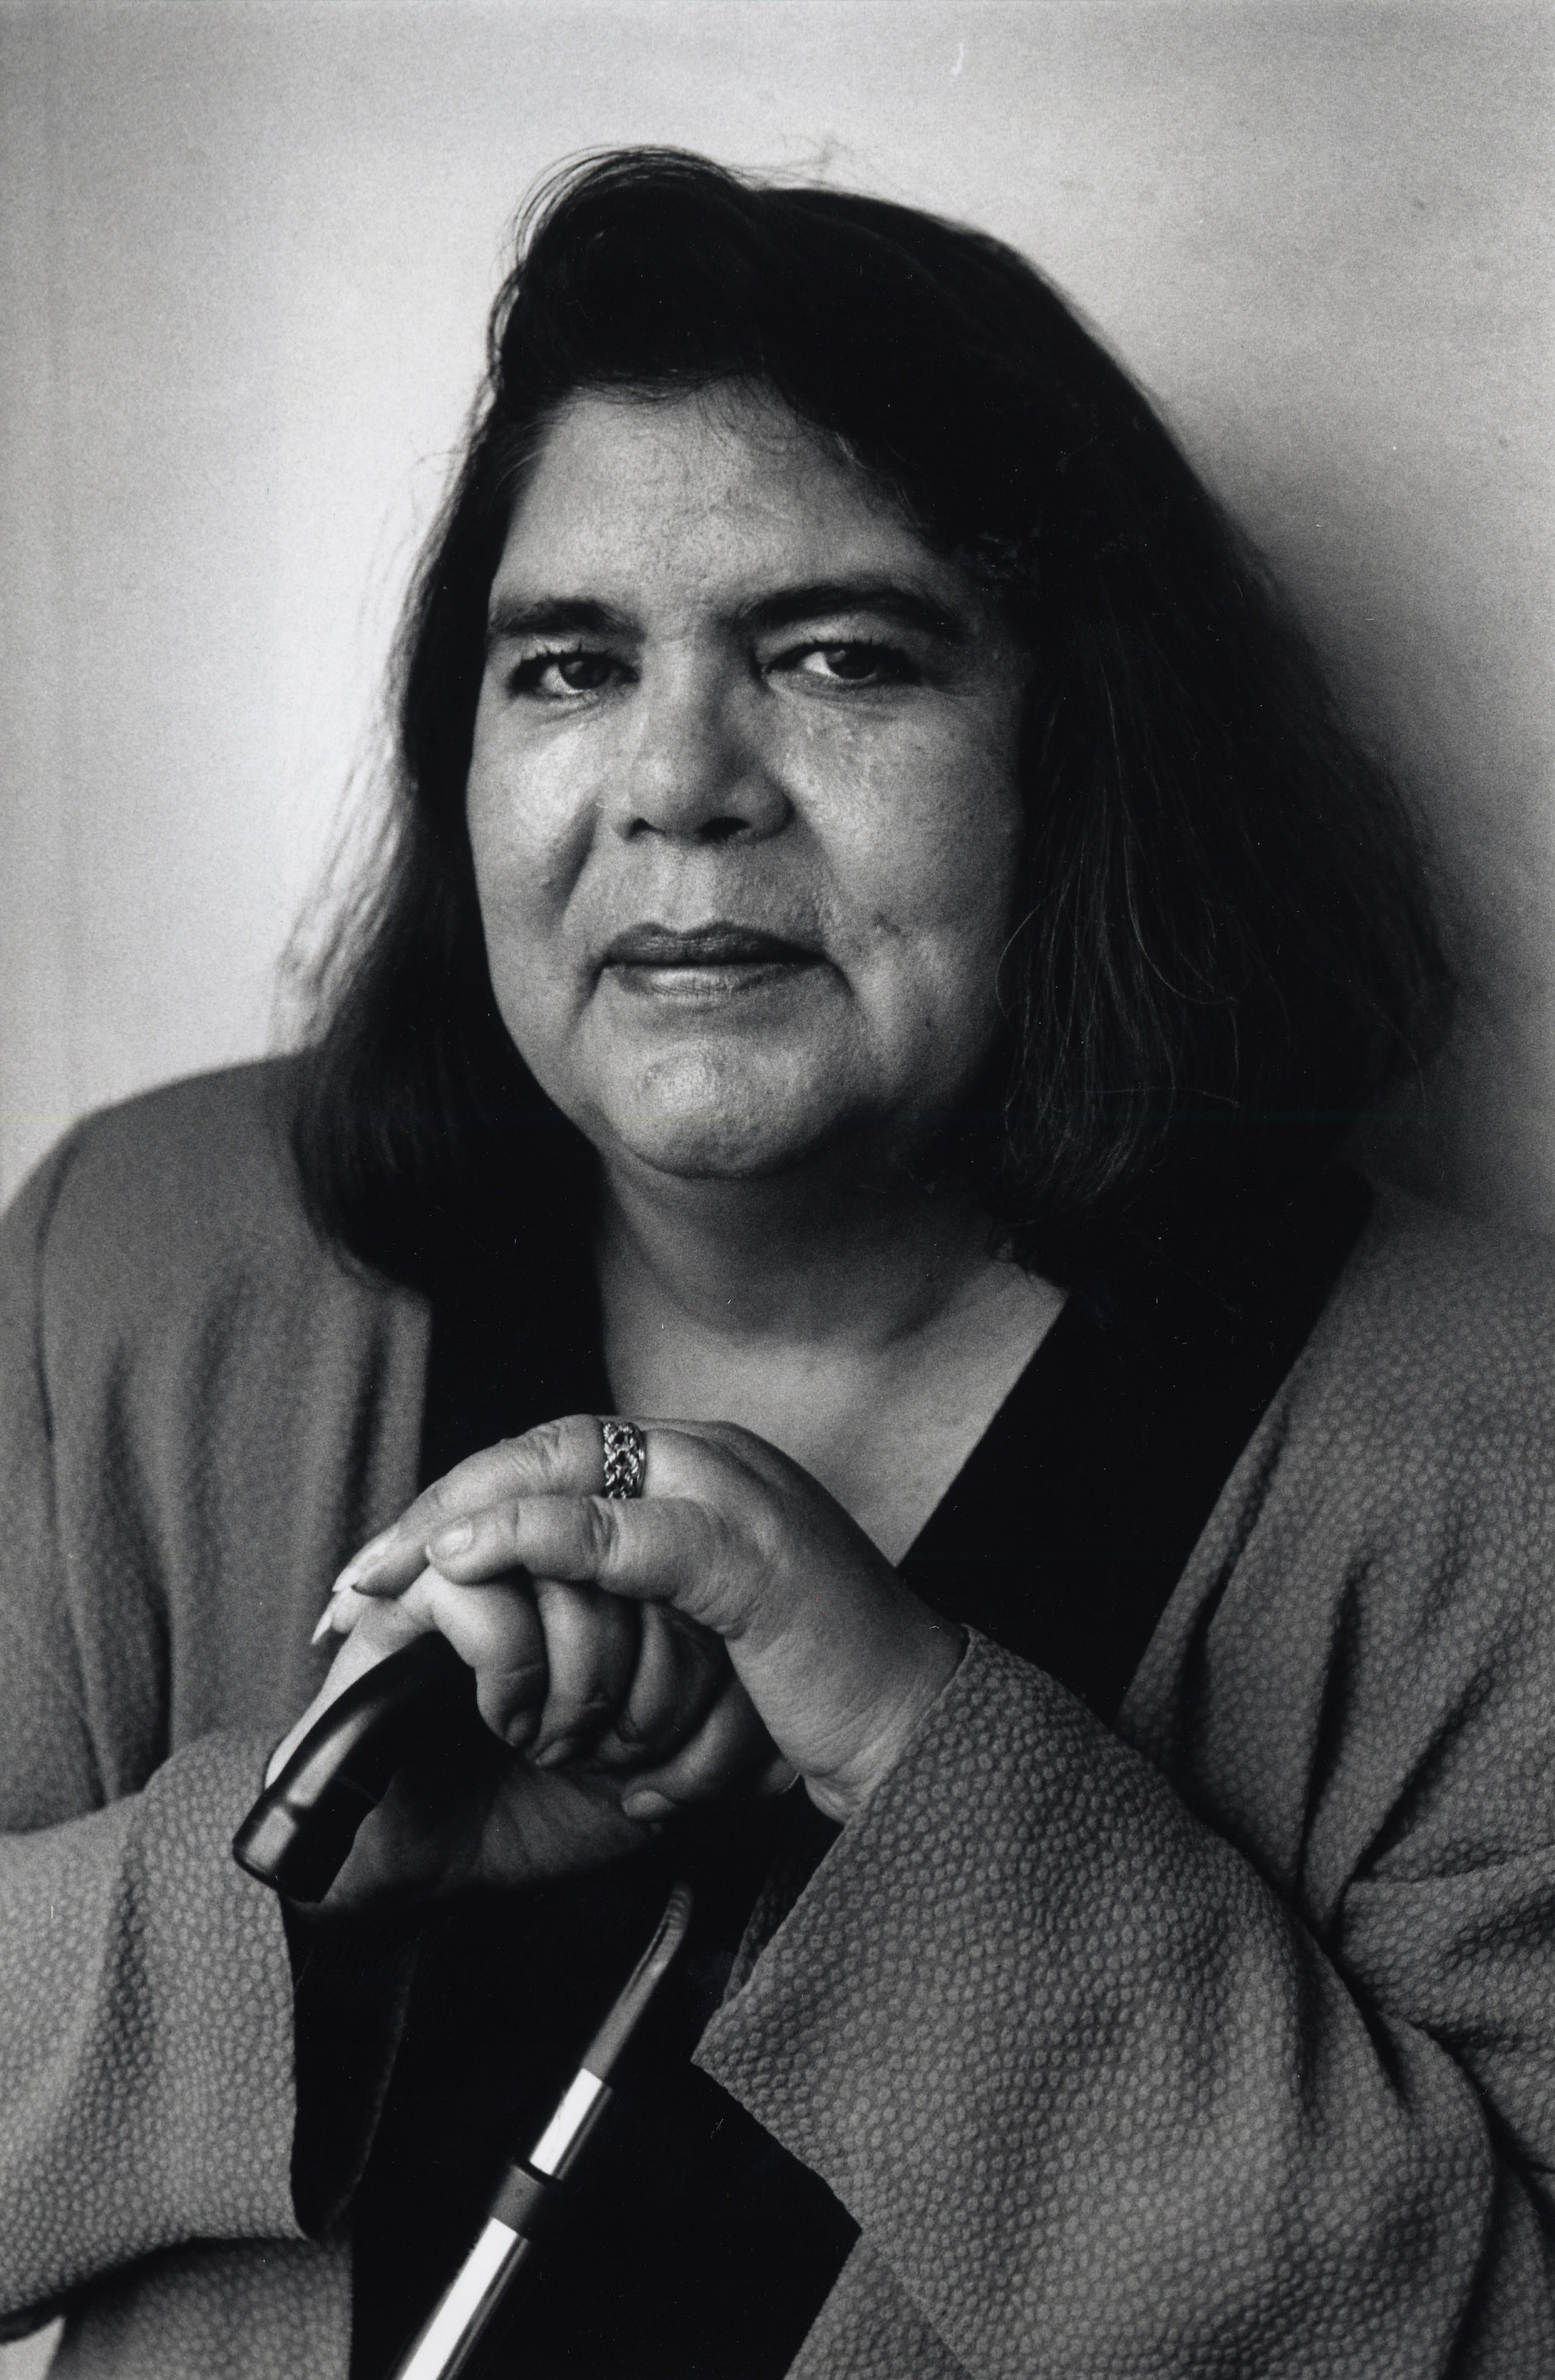 WASHINGTON, DC - NOVEMBER 15: FILE, Portrait of Chief Wilma Mankiller on November 15, 1993. (Photo by Judy Weintraub/The Washington Post via Getty Images)